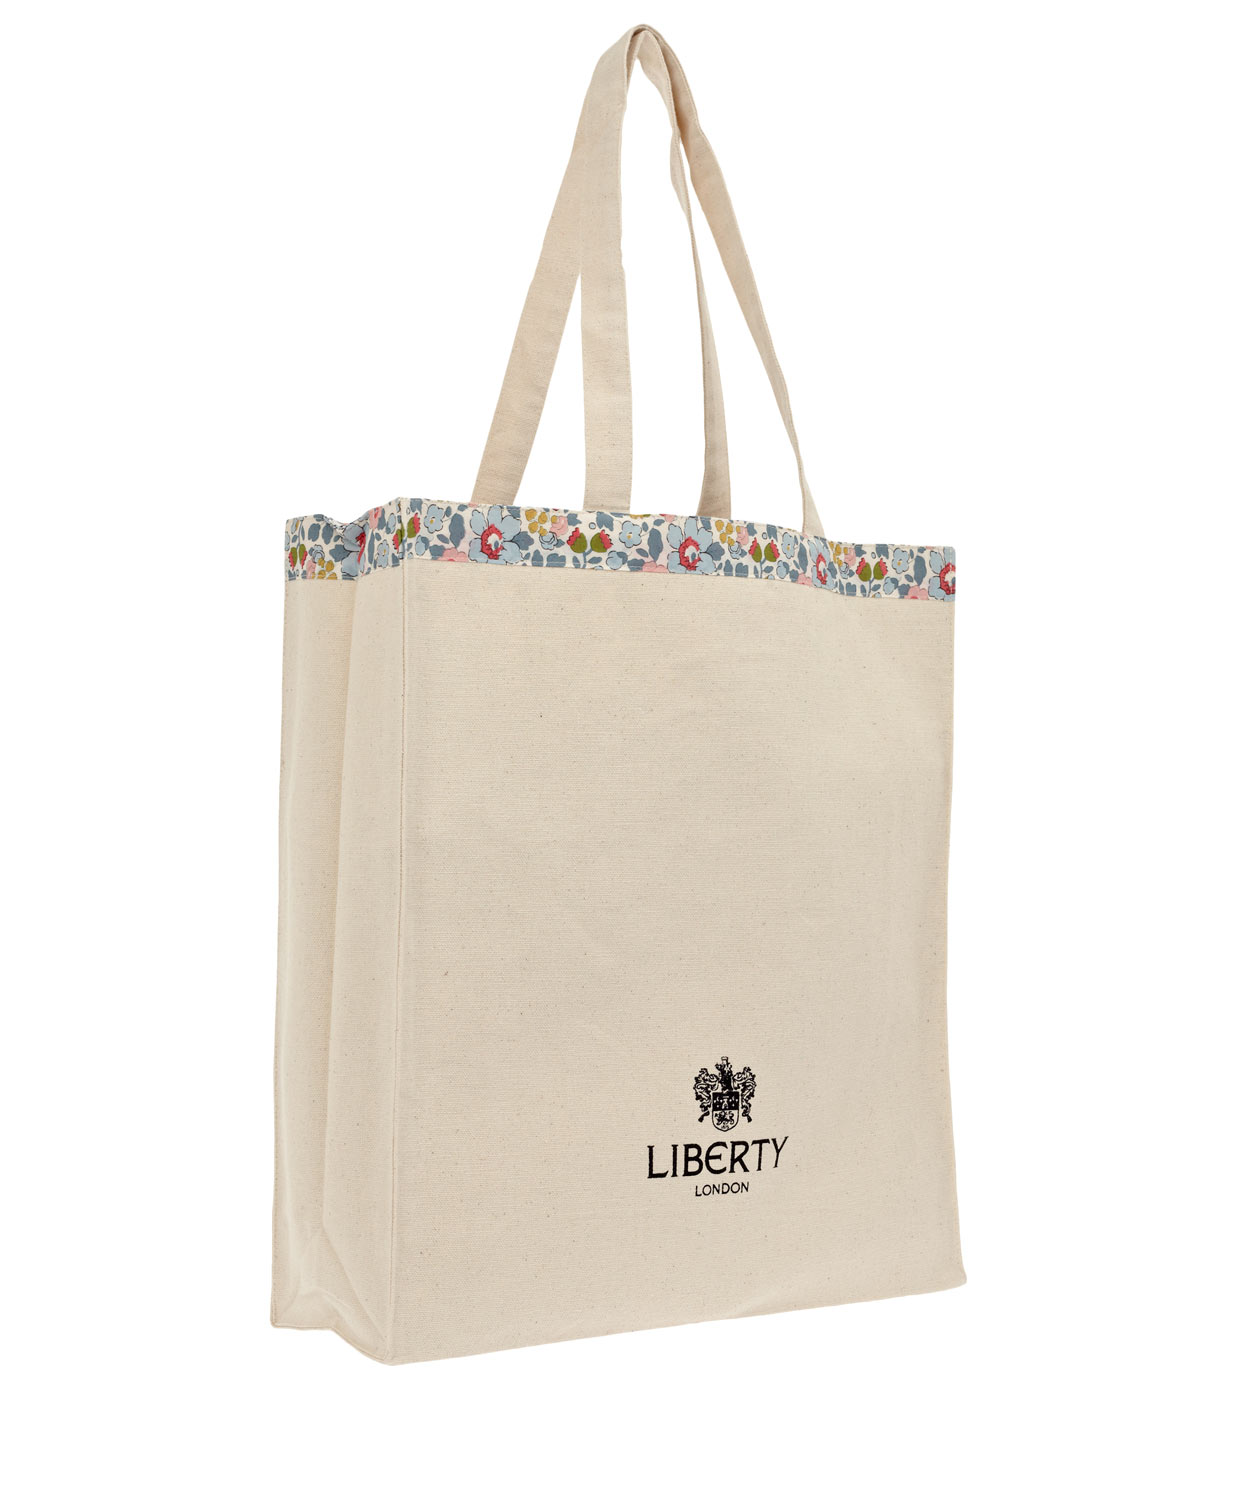 dbd26f0f1a Lyst - Liberty Betsy Print Canvas Tote Bag in Natural